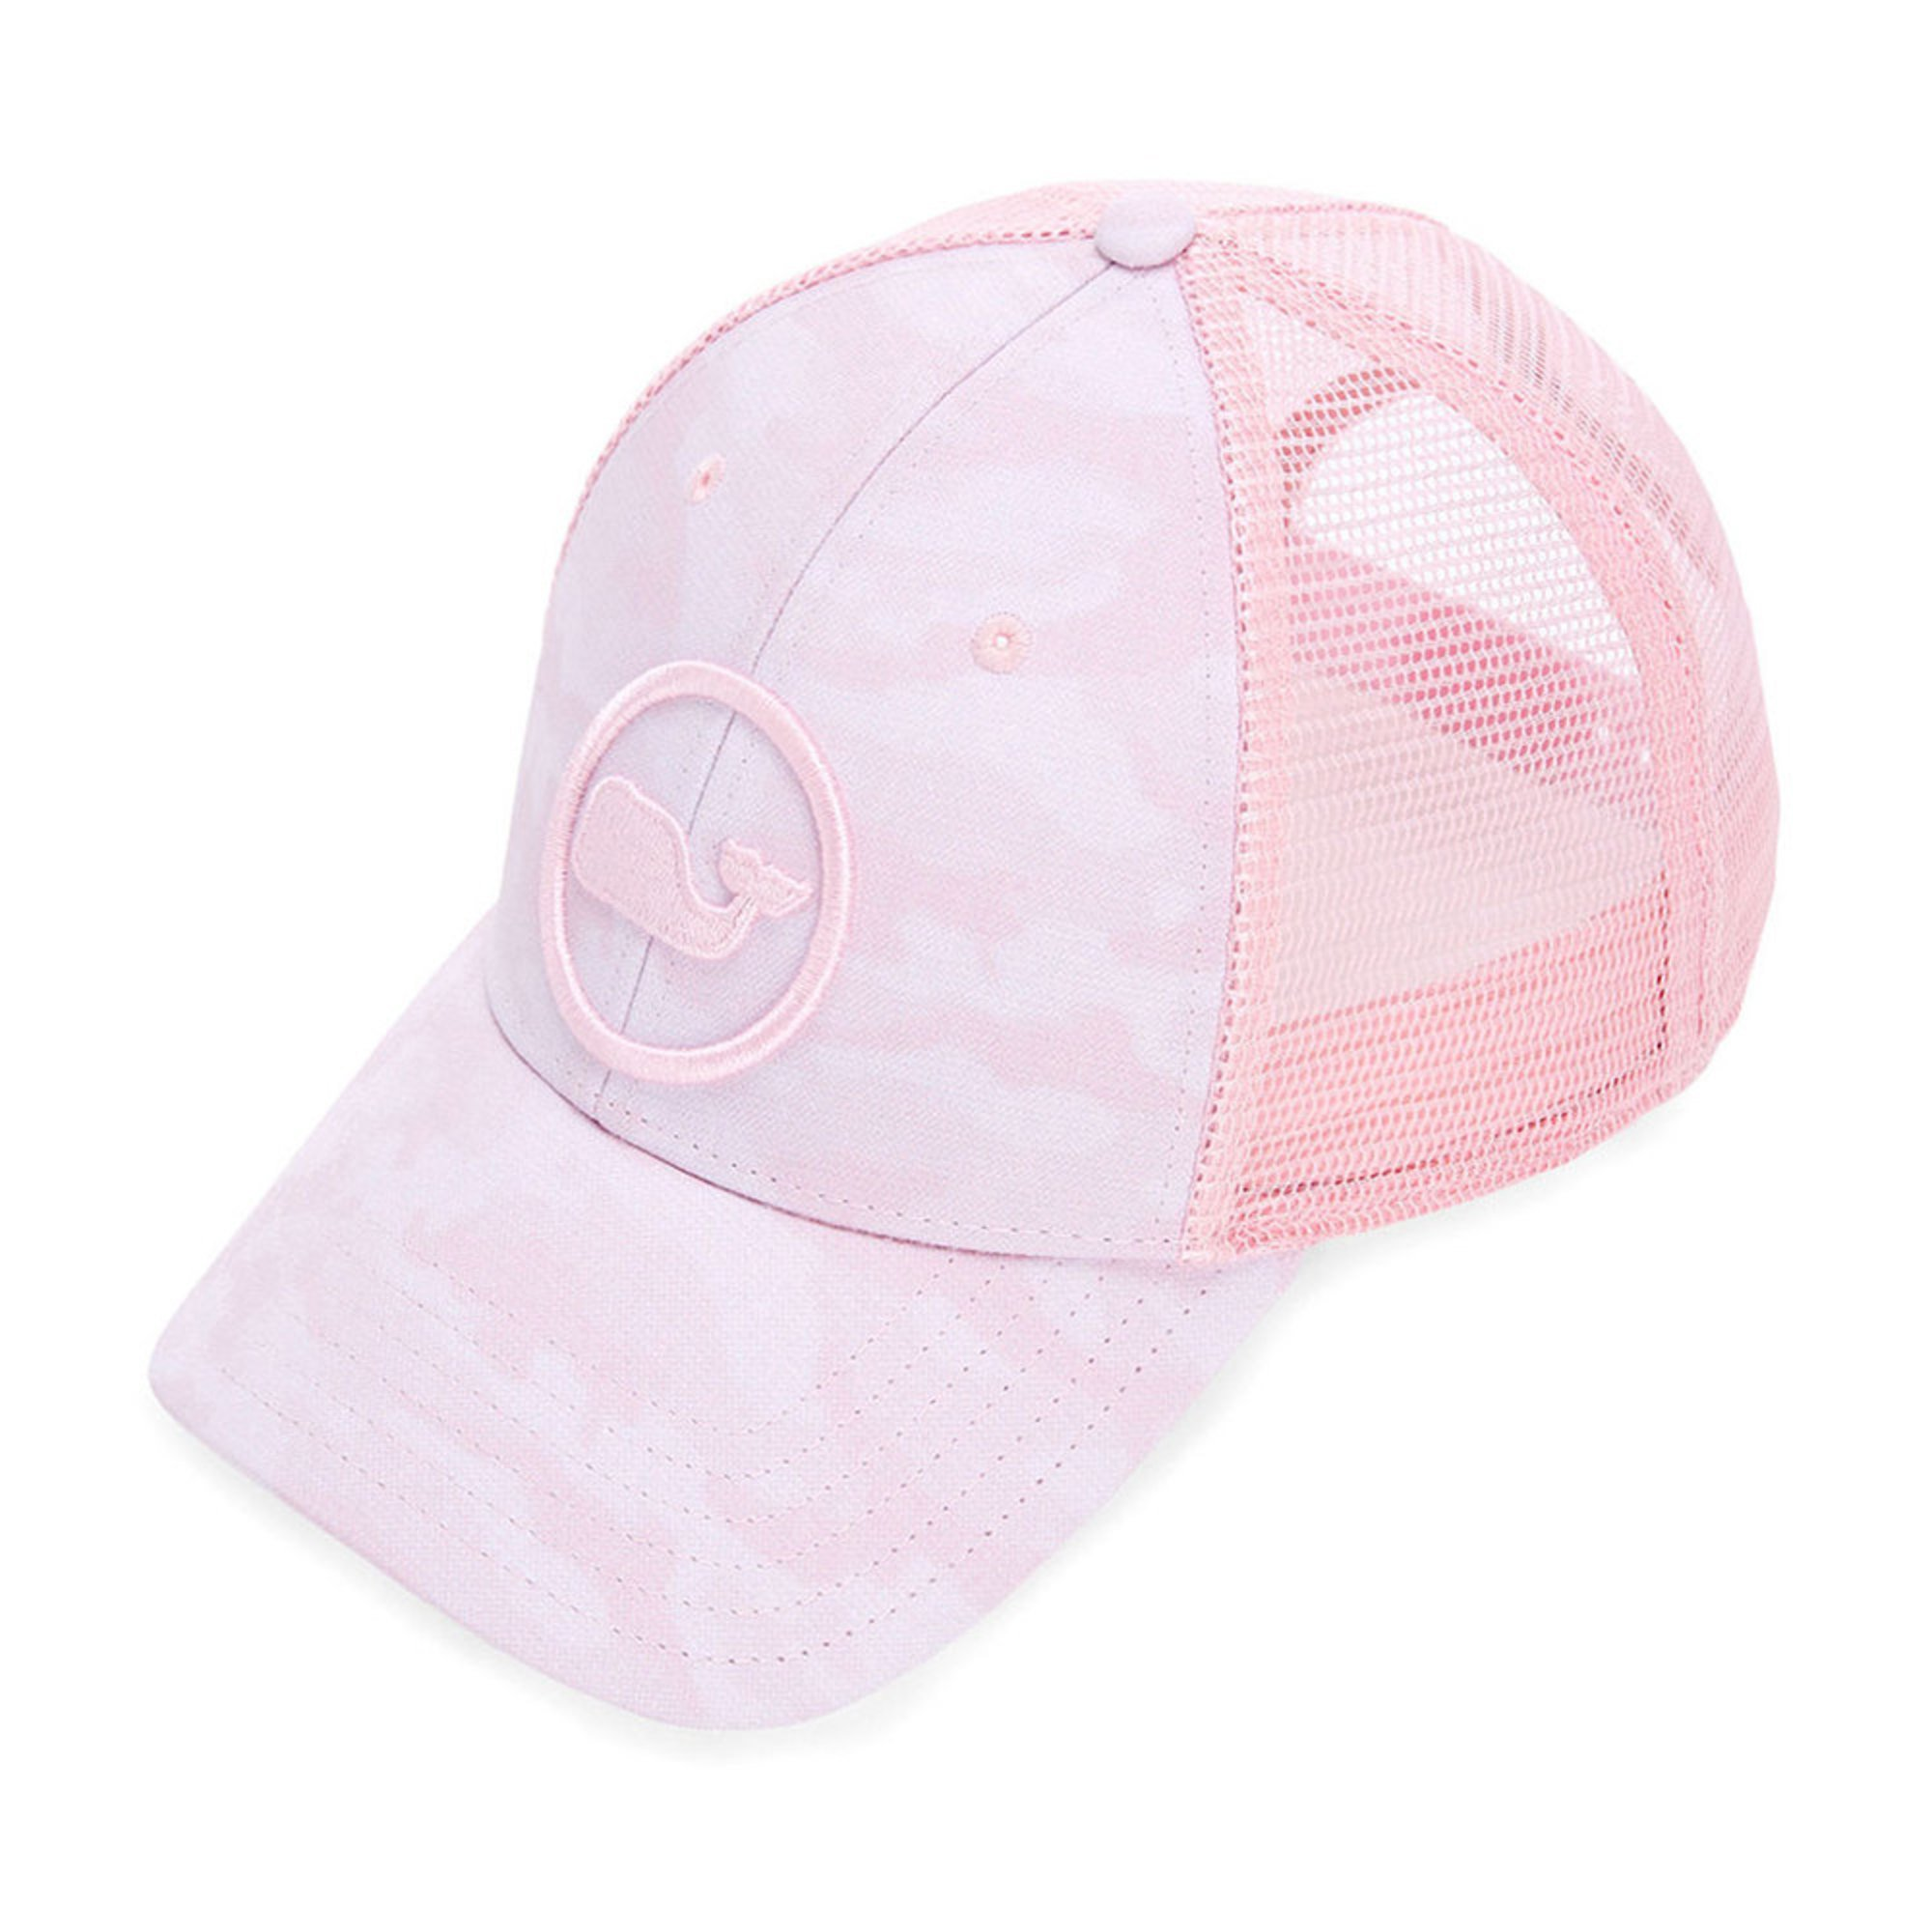 9df909d8827e Vineyard Vines Women's Pink Camo Trucker Hat | Casual & Dress Hats ...